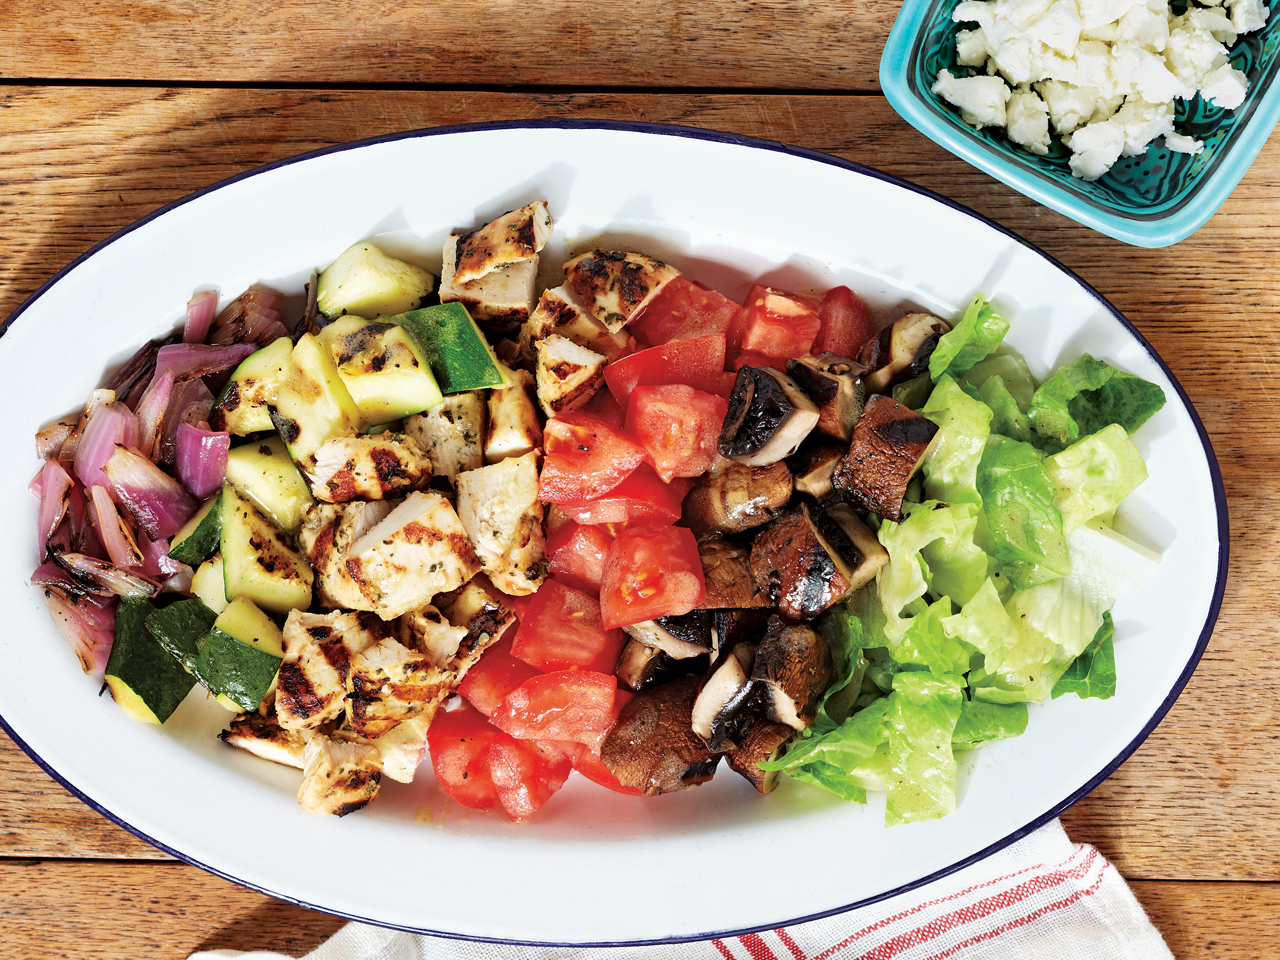 Grilled Chicken and Veg Chopped Salad